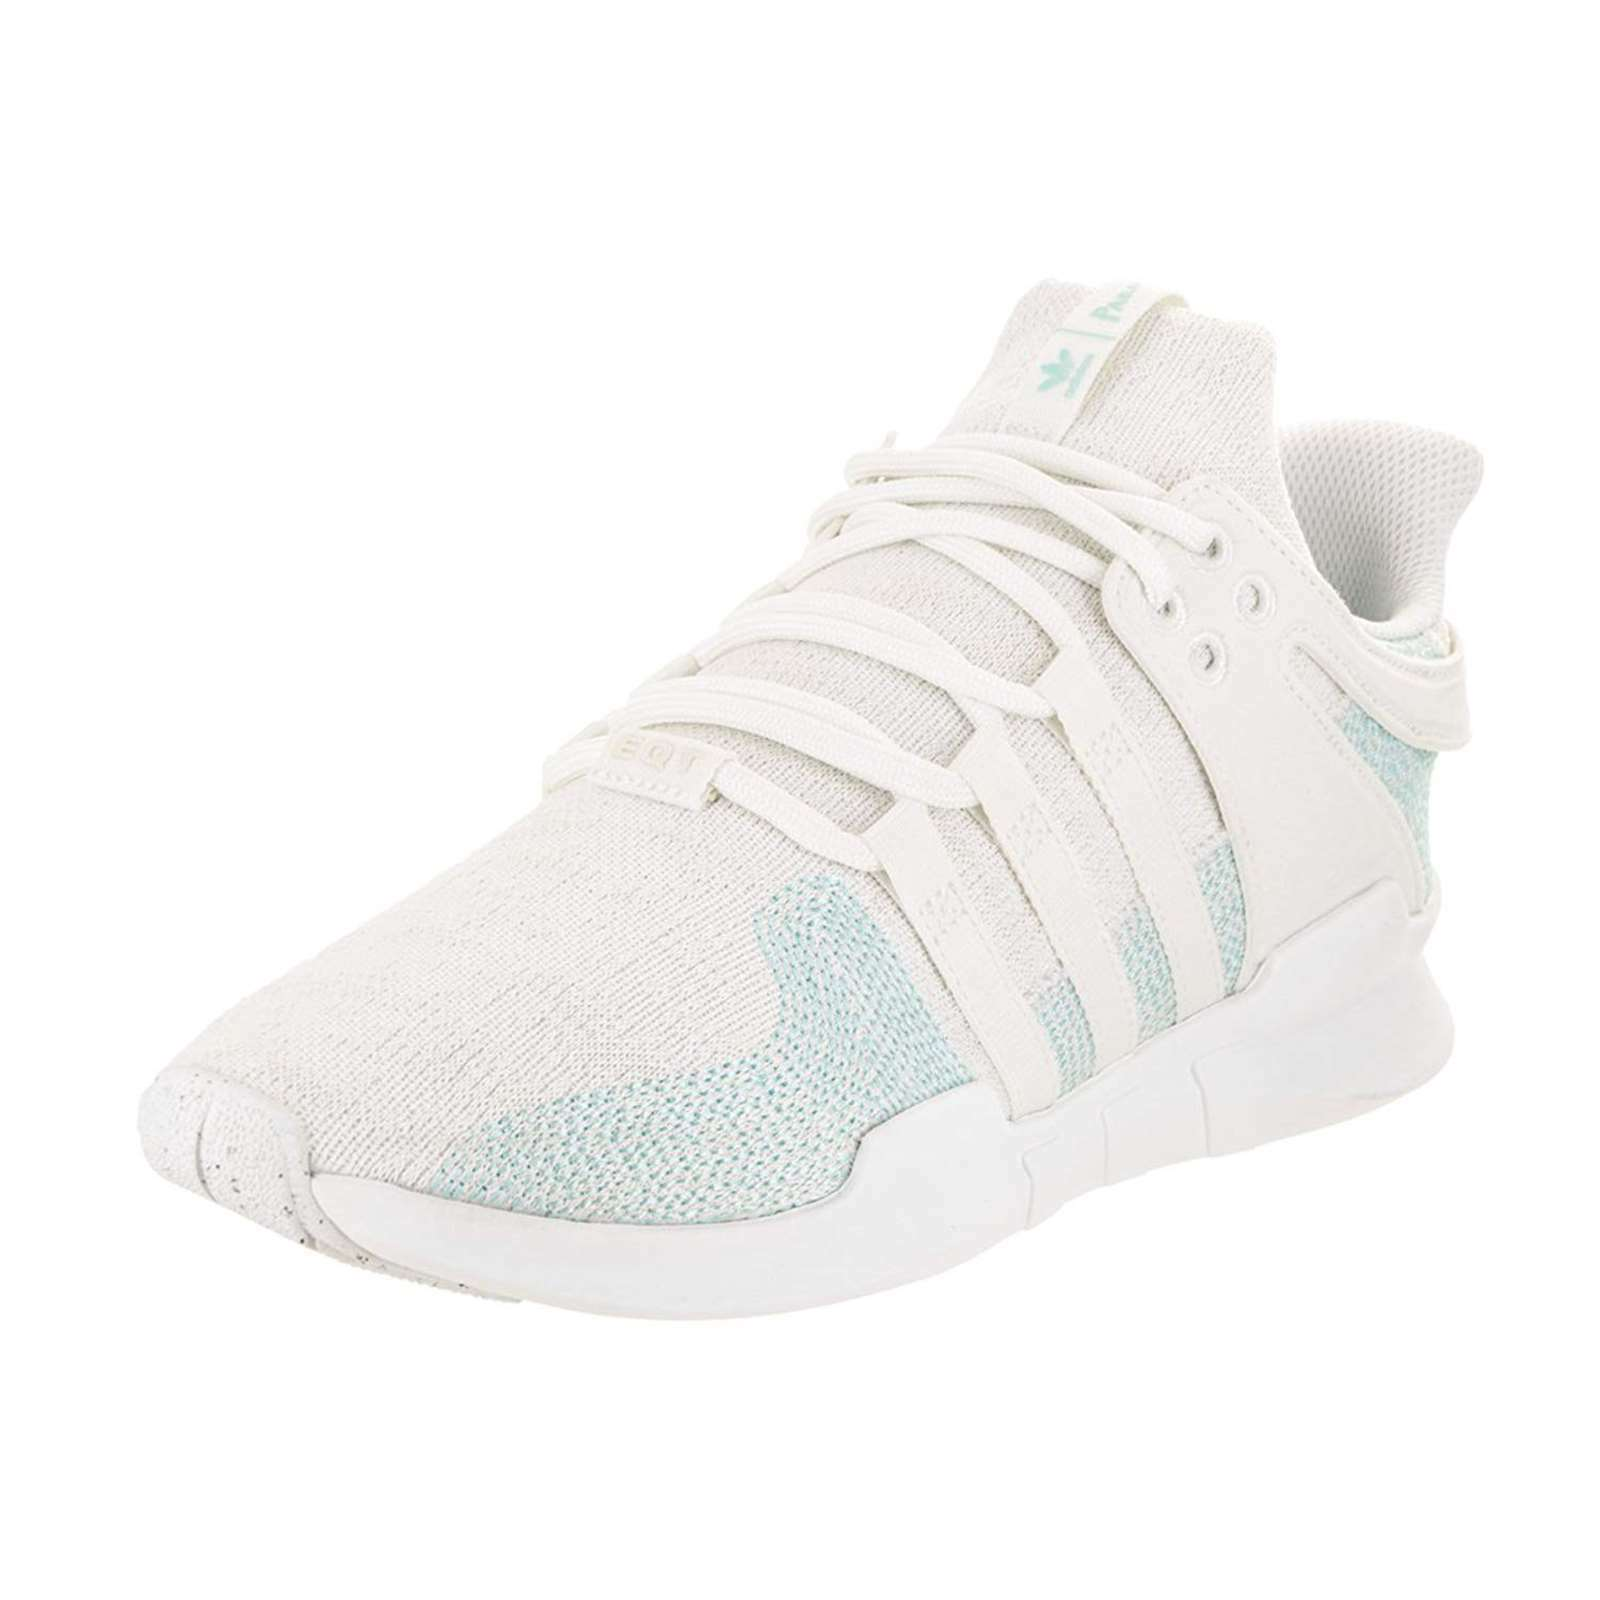 be3508ed19b398 adidas EQT Support ADV Parley Shoes Men s Running White   Blue ...